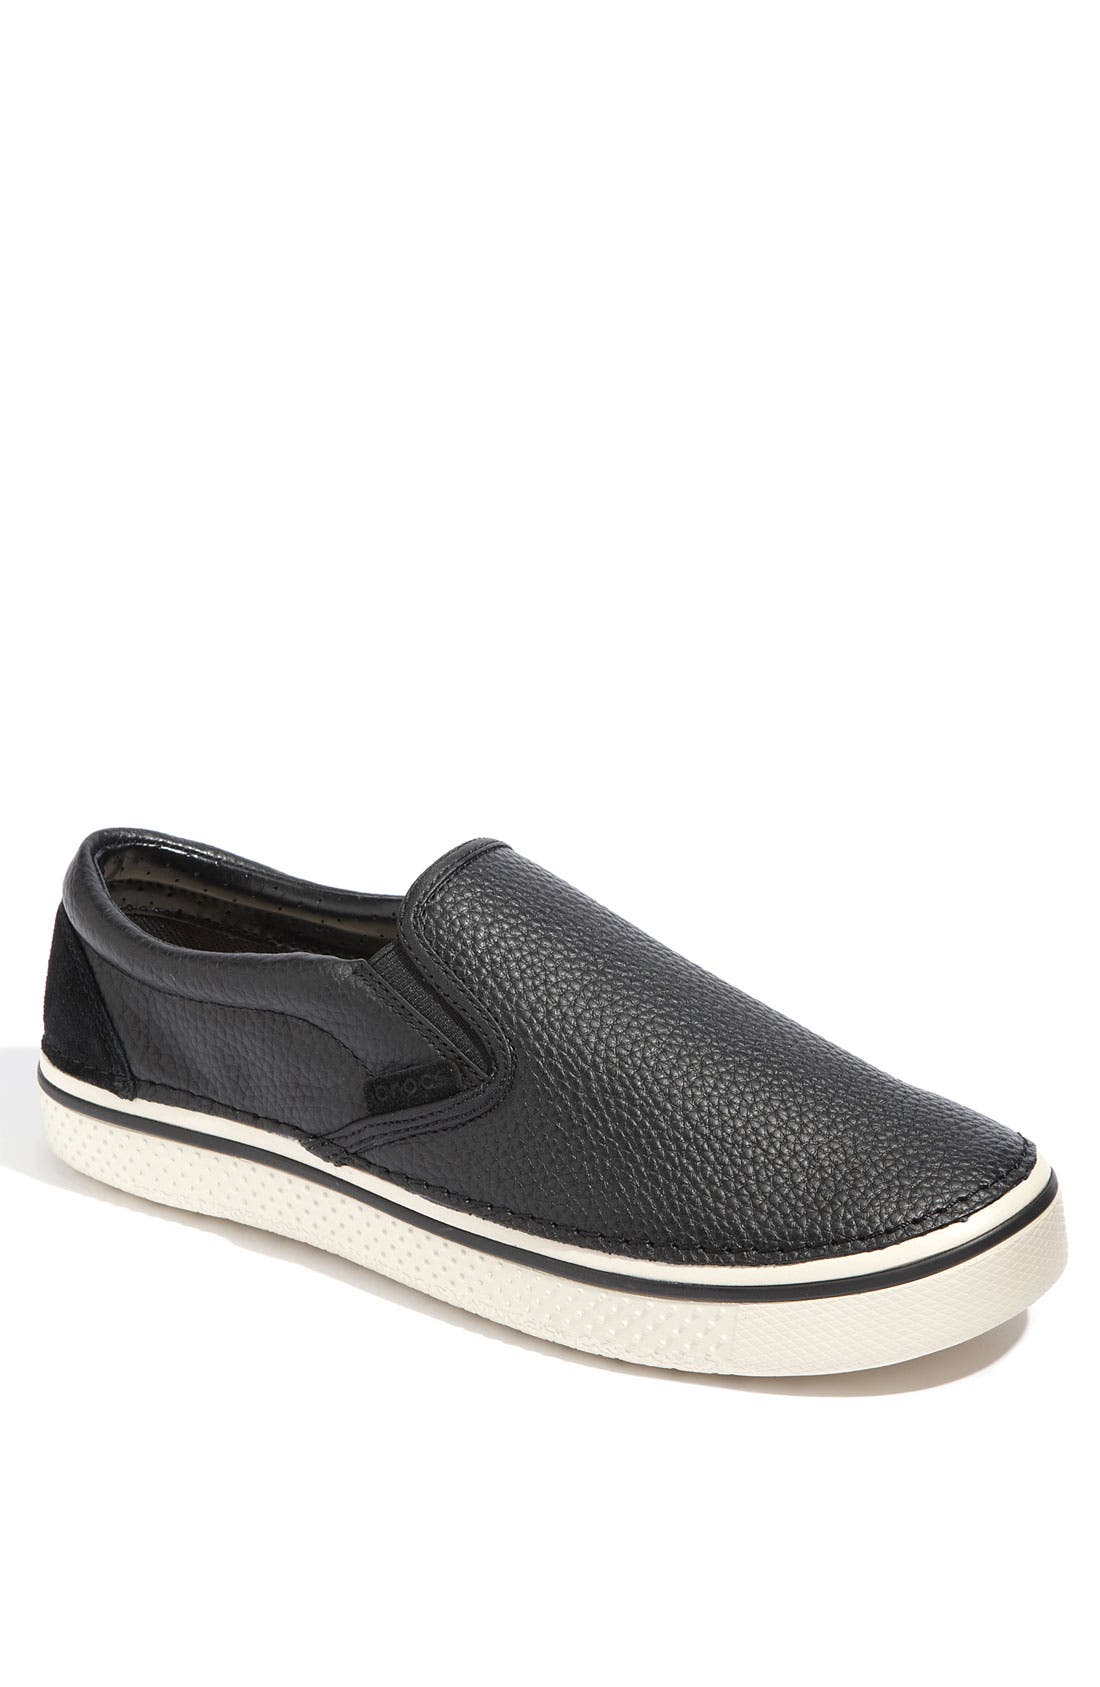 Main Image - CROCS™ 'Hover' Slip-On